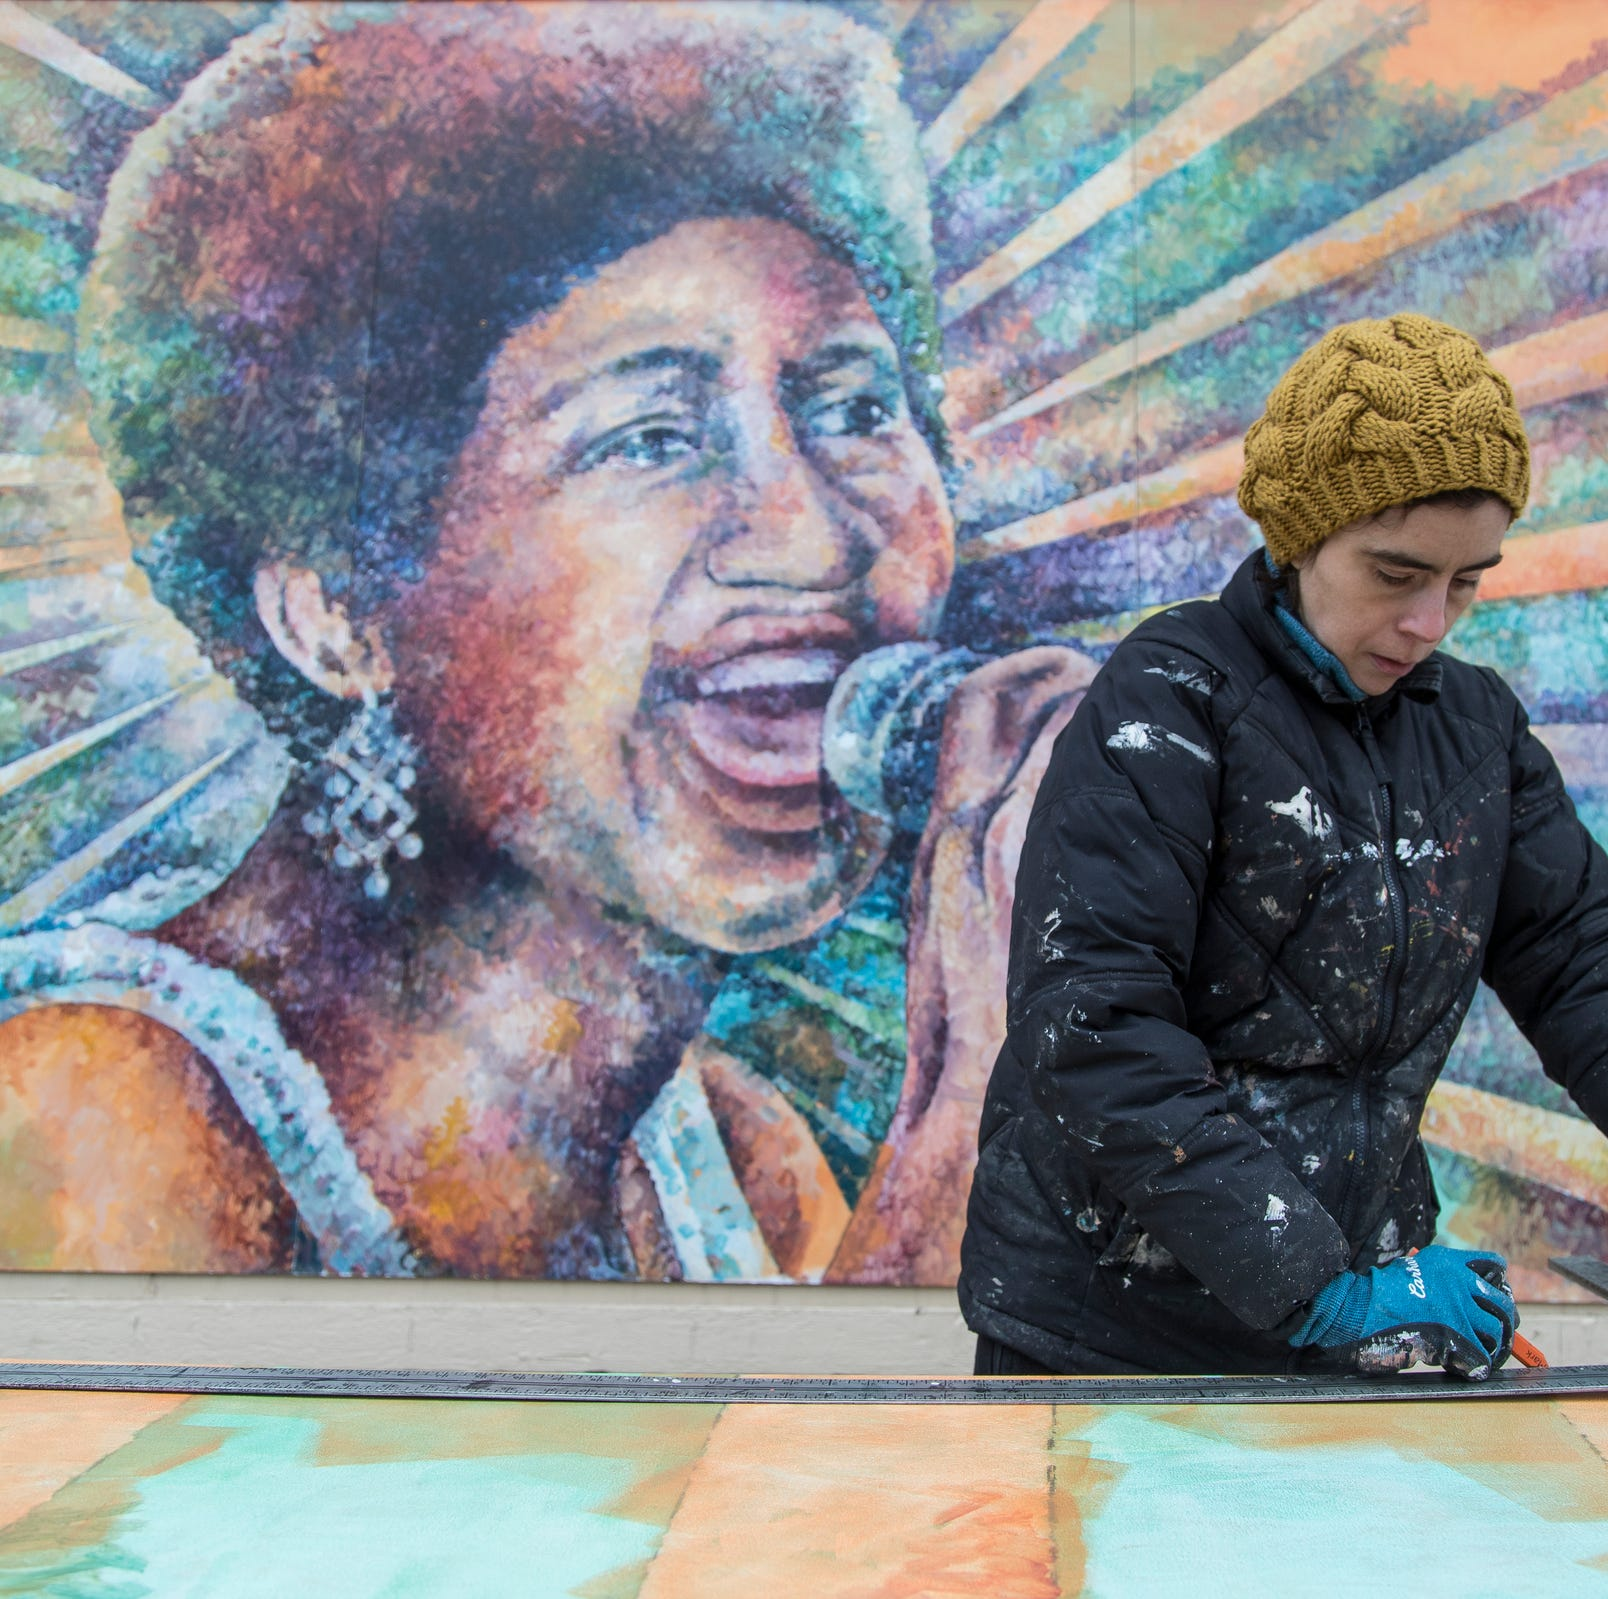 Aretha Franklin, Marvin Gaye paintings brighten tense Detroit border